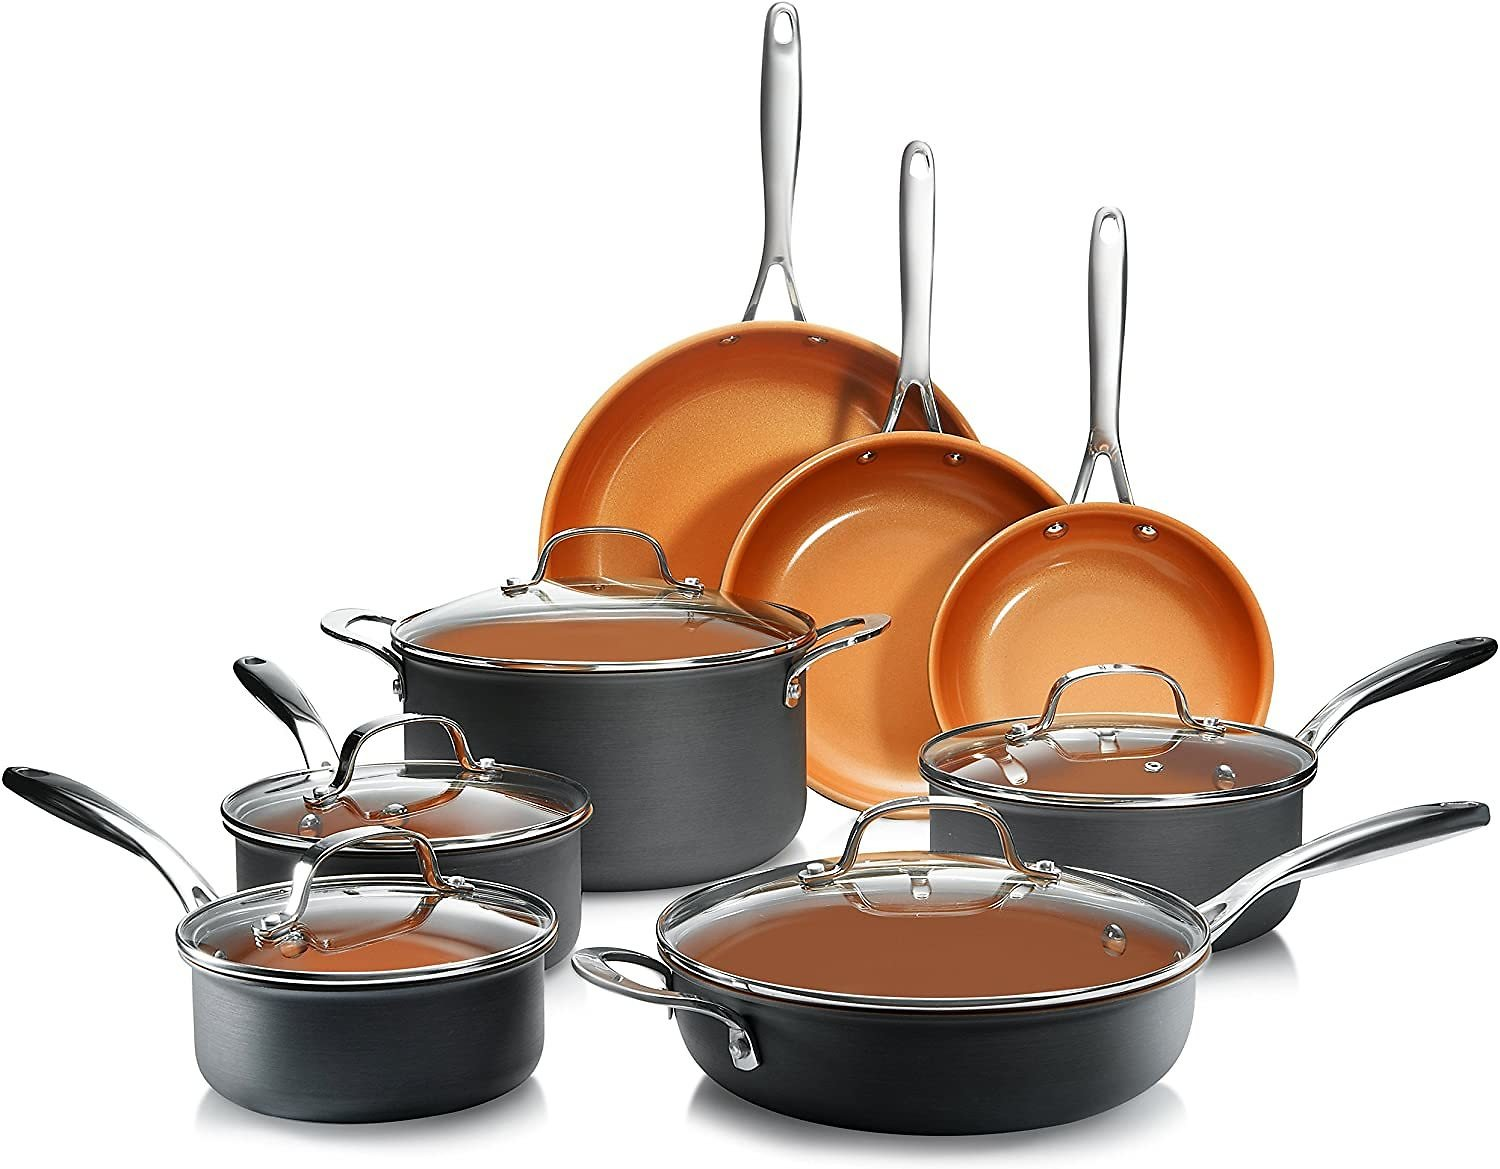 13 Piece Premium Cookware Set with Ultimate Nonstick Ceramic & Titanium Coating, Oven and Dishwasher Safe, Copper